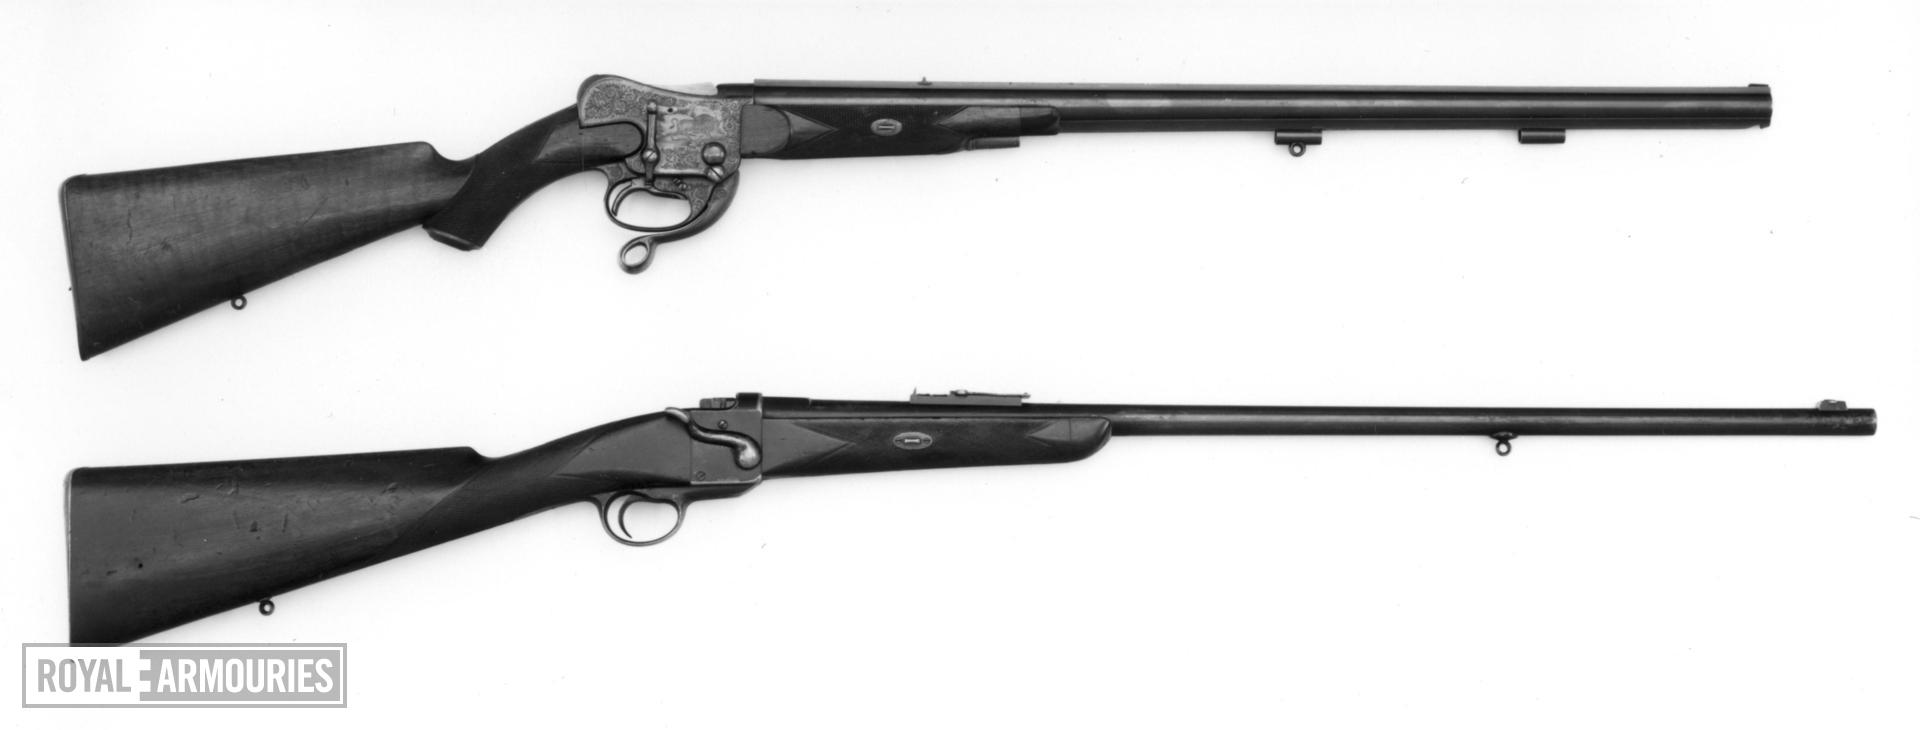 Centrefire underlever breech-loading rifle - Westley Richards Express Retailed by James Woodward and Sons, London